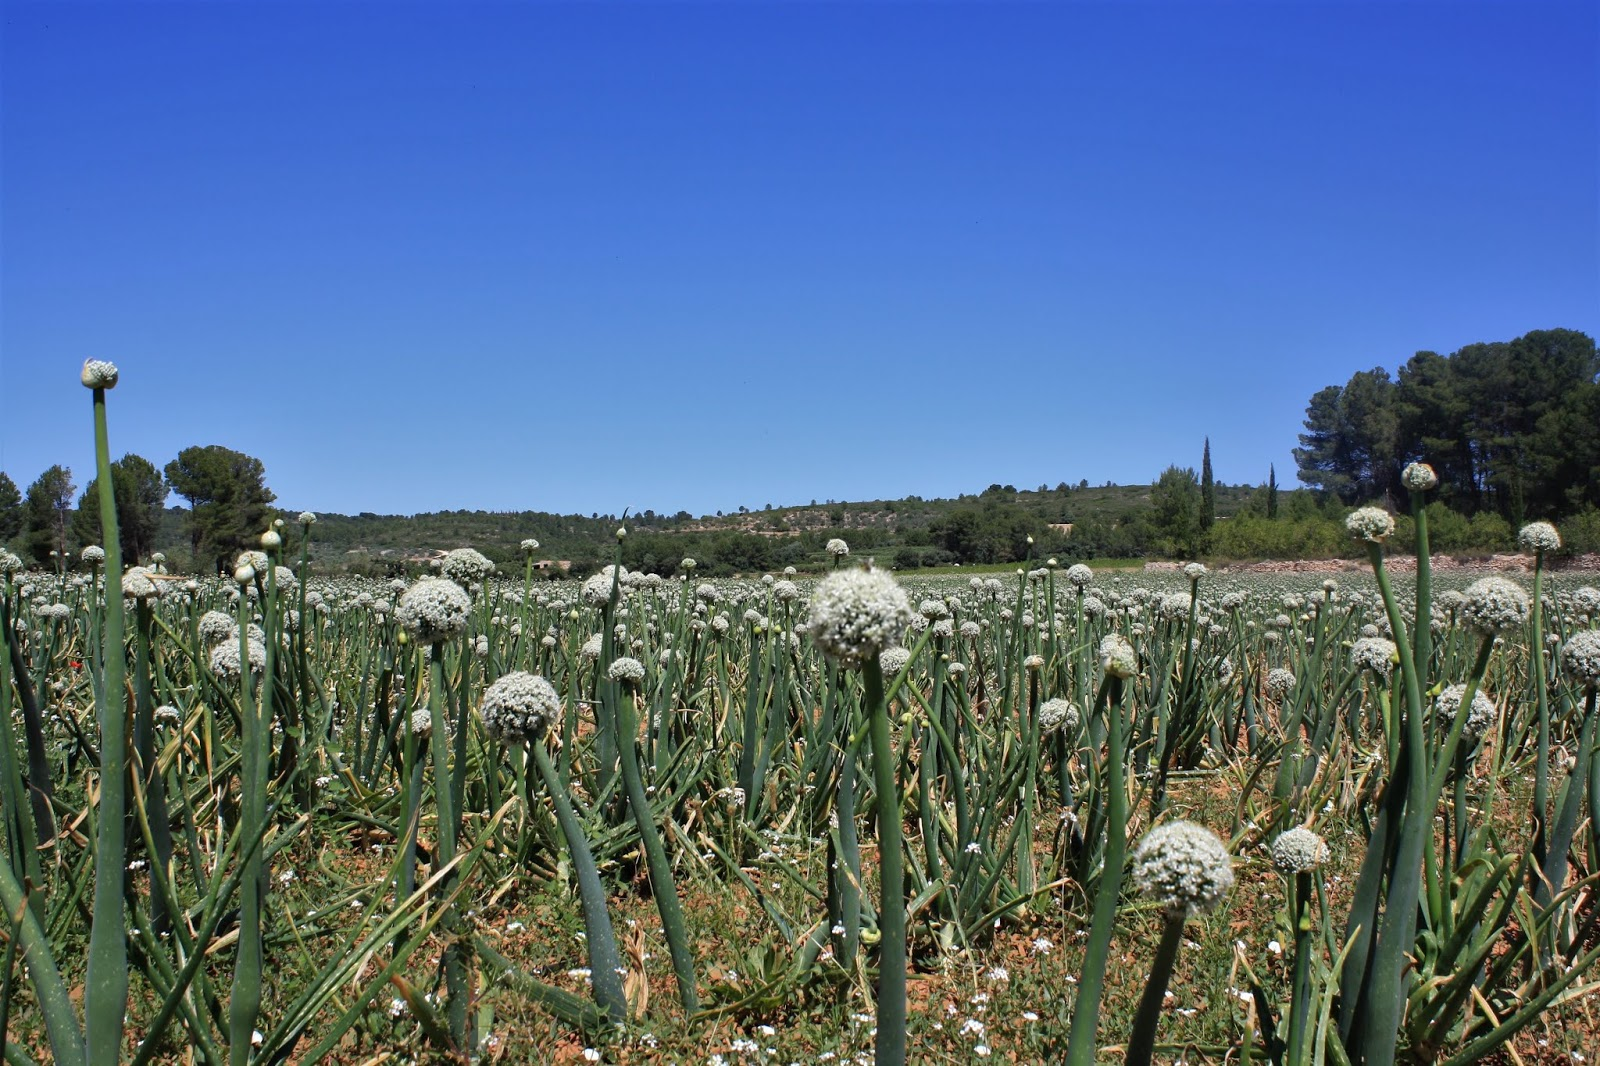 Garlic field in Sierra de Enguera, Valencia, Spain